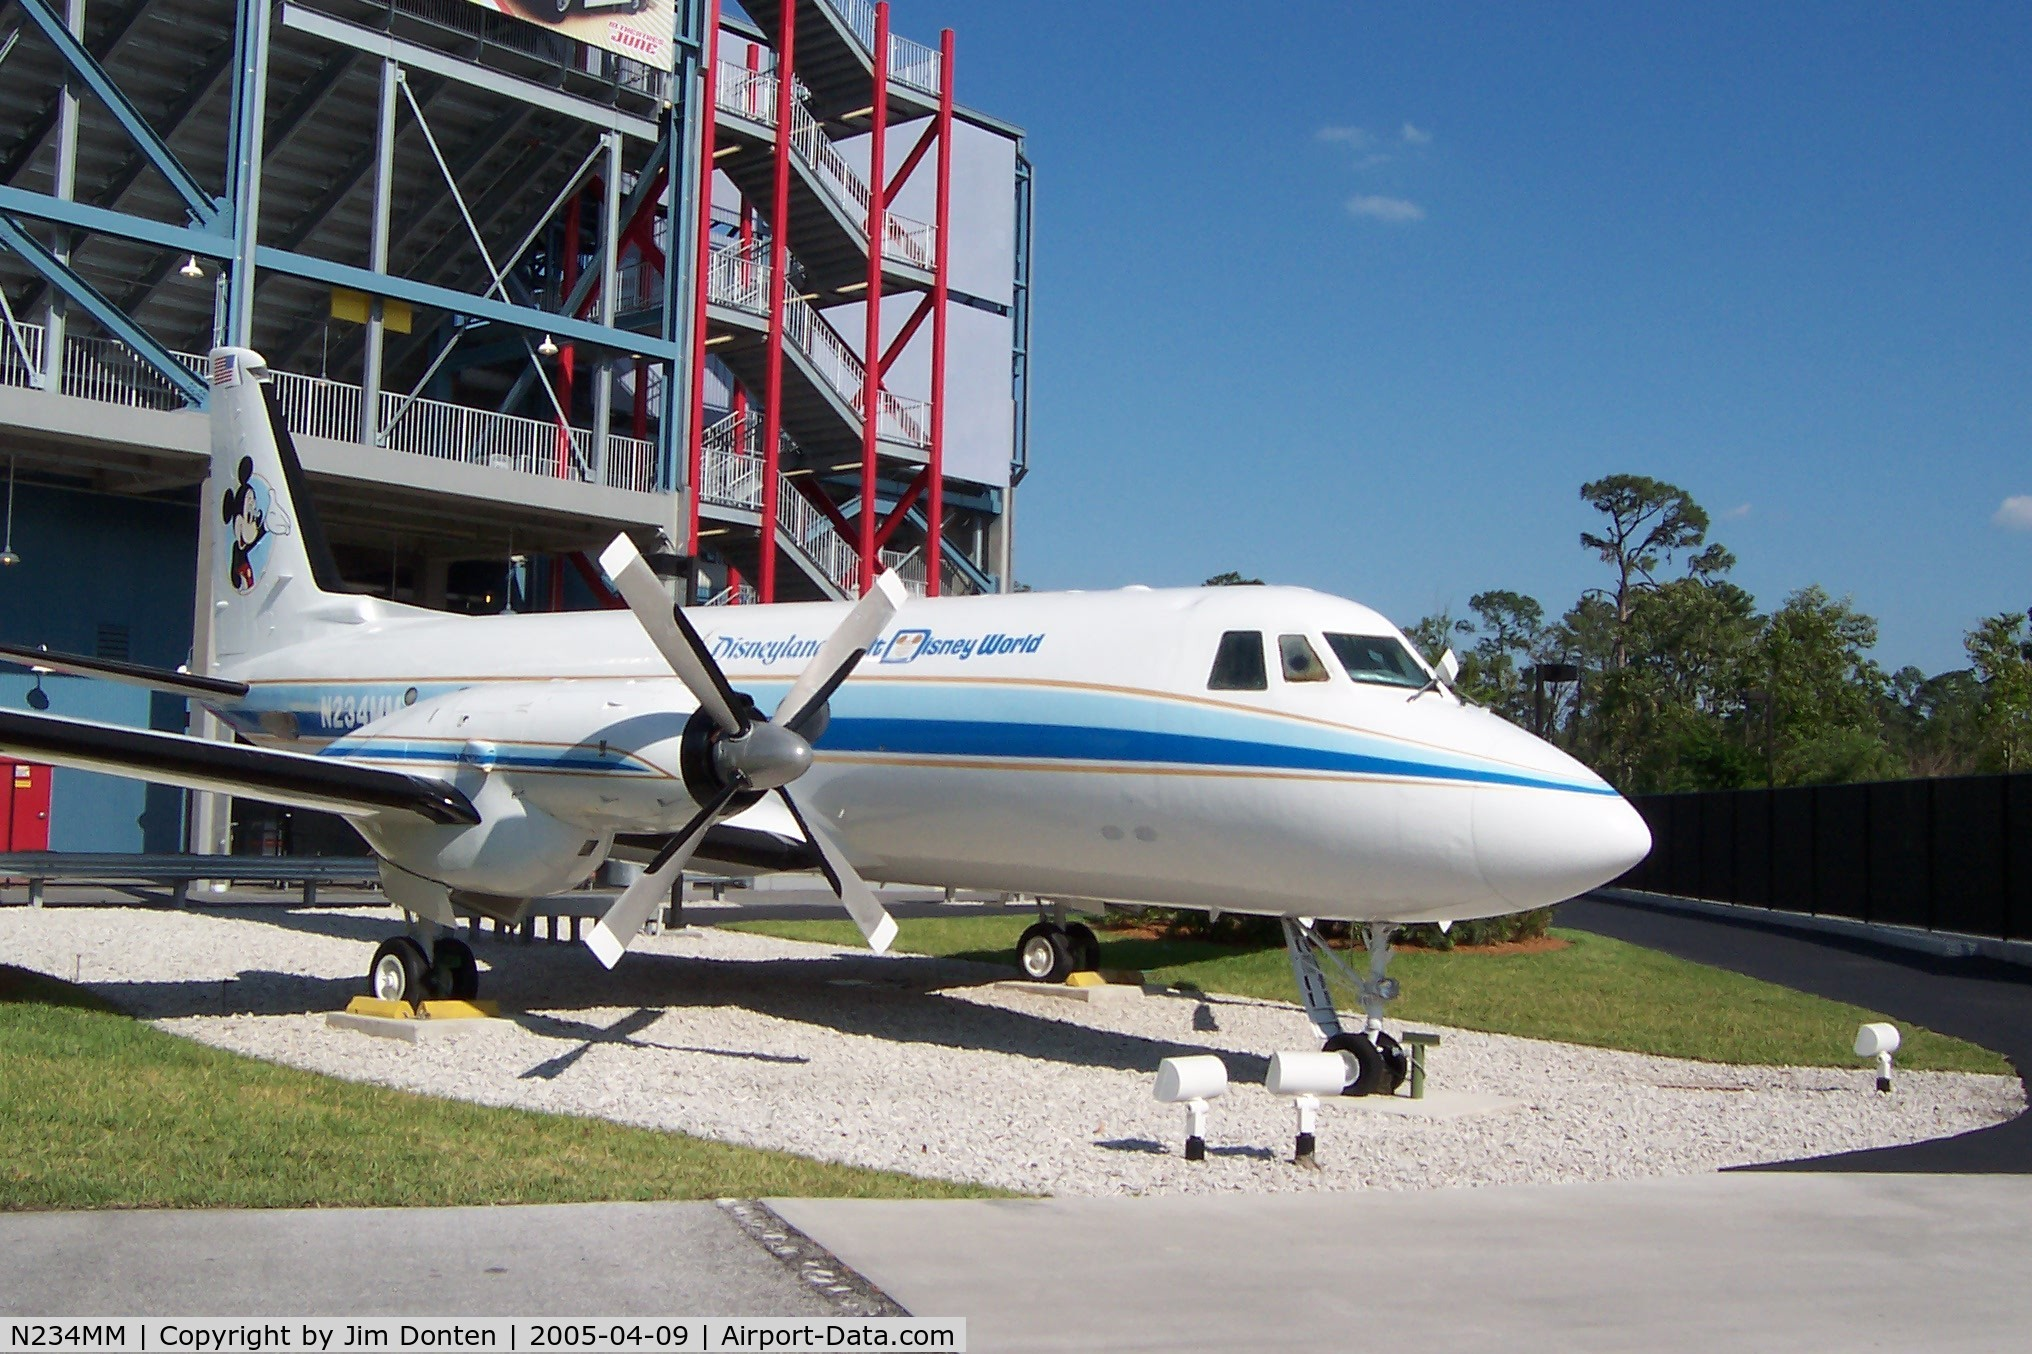 N234MM, 1963 Grumman G-159 Gulfstream 1 C/N 121, Walt Disney's personal jet on display at Disney Hollywood Studios